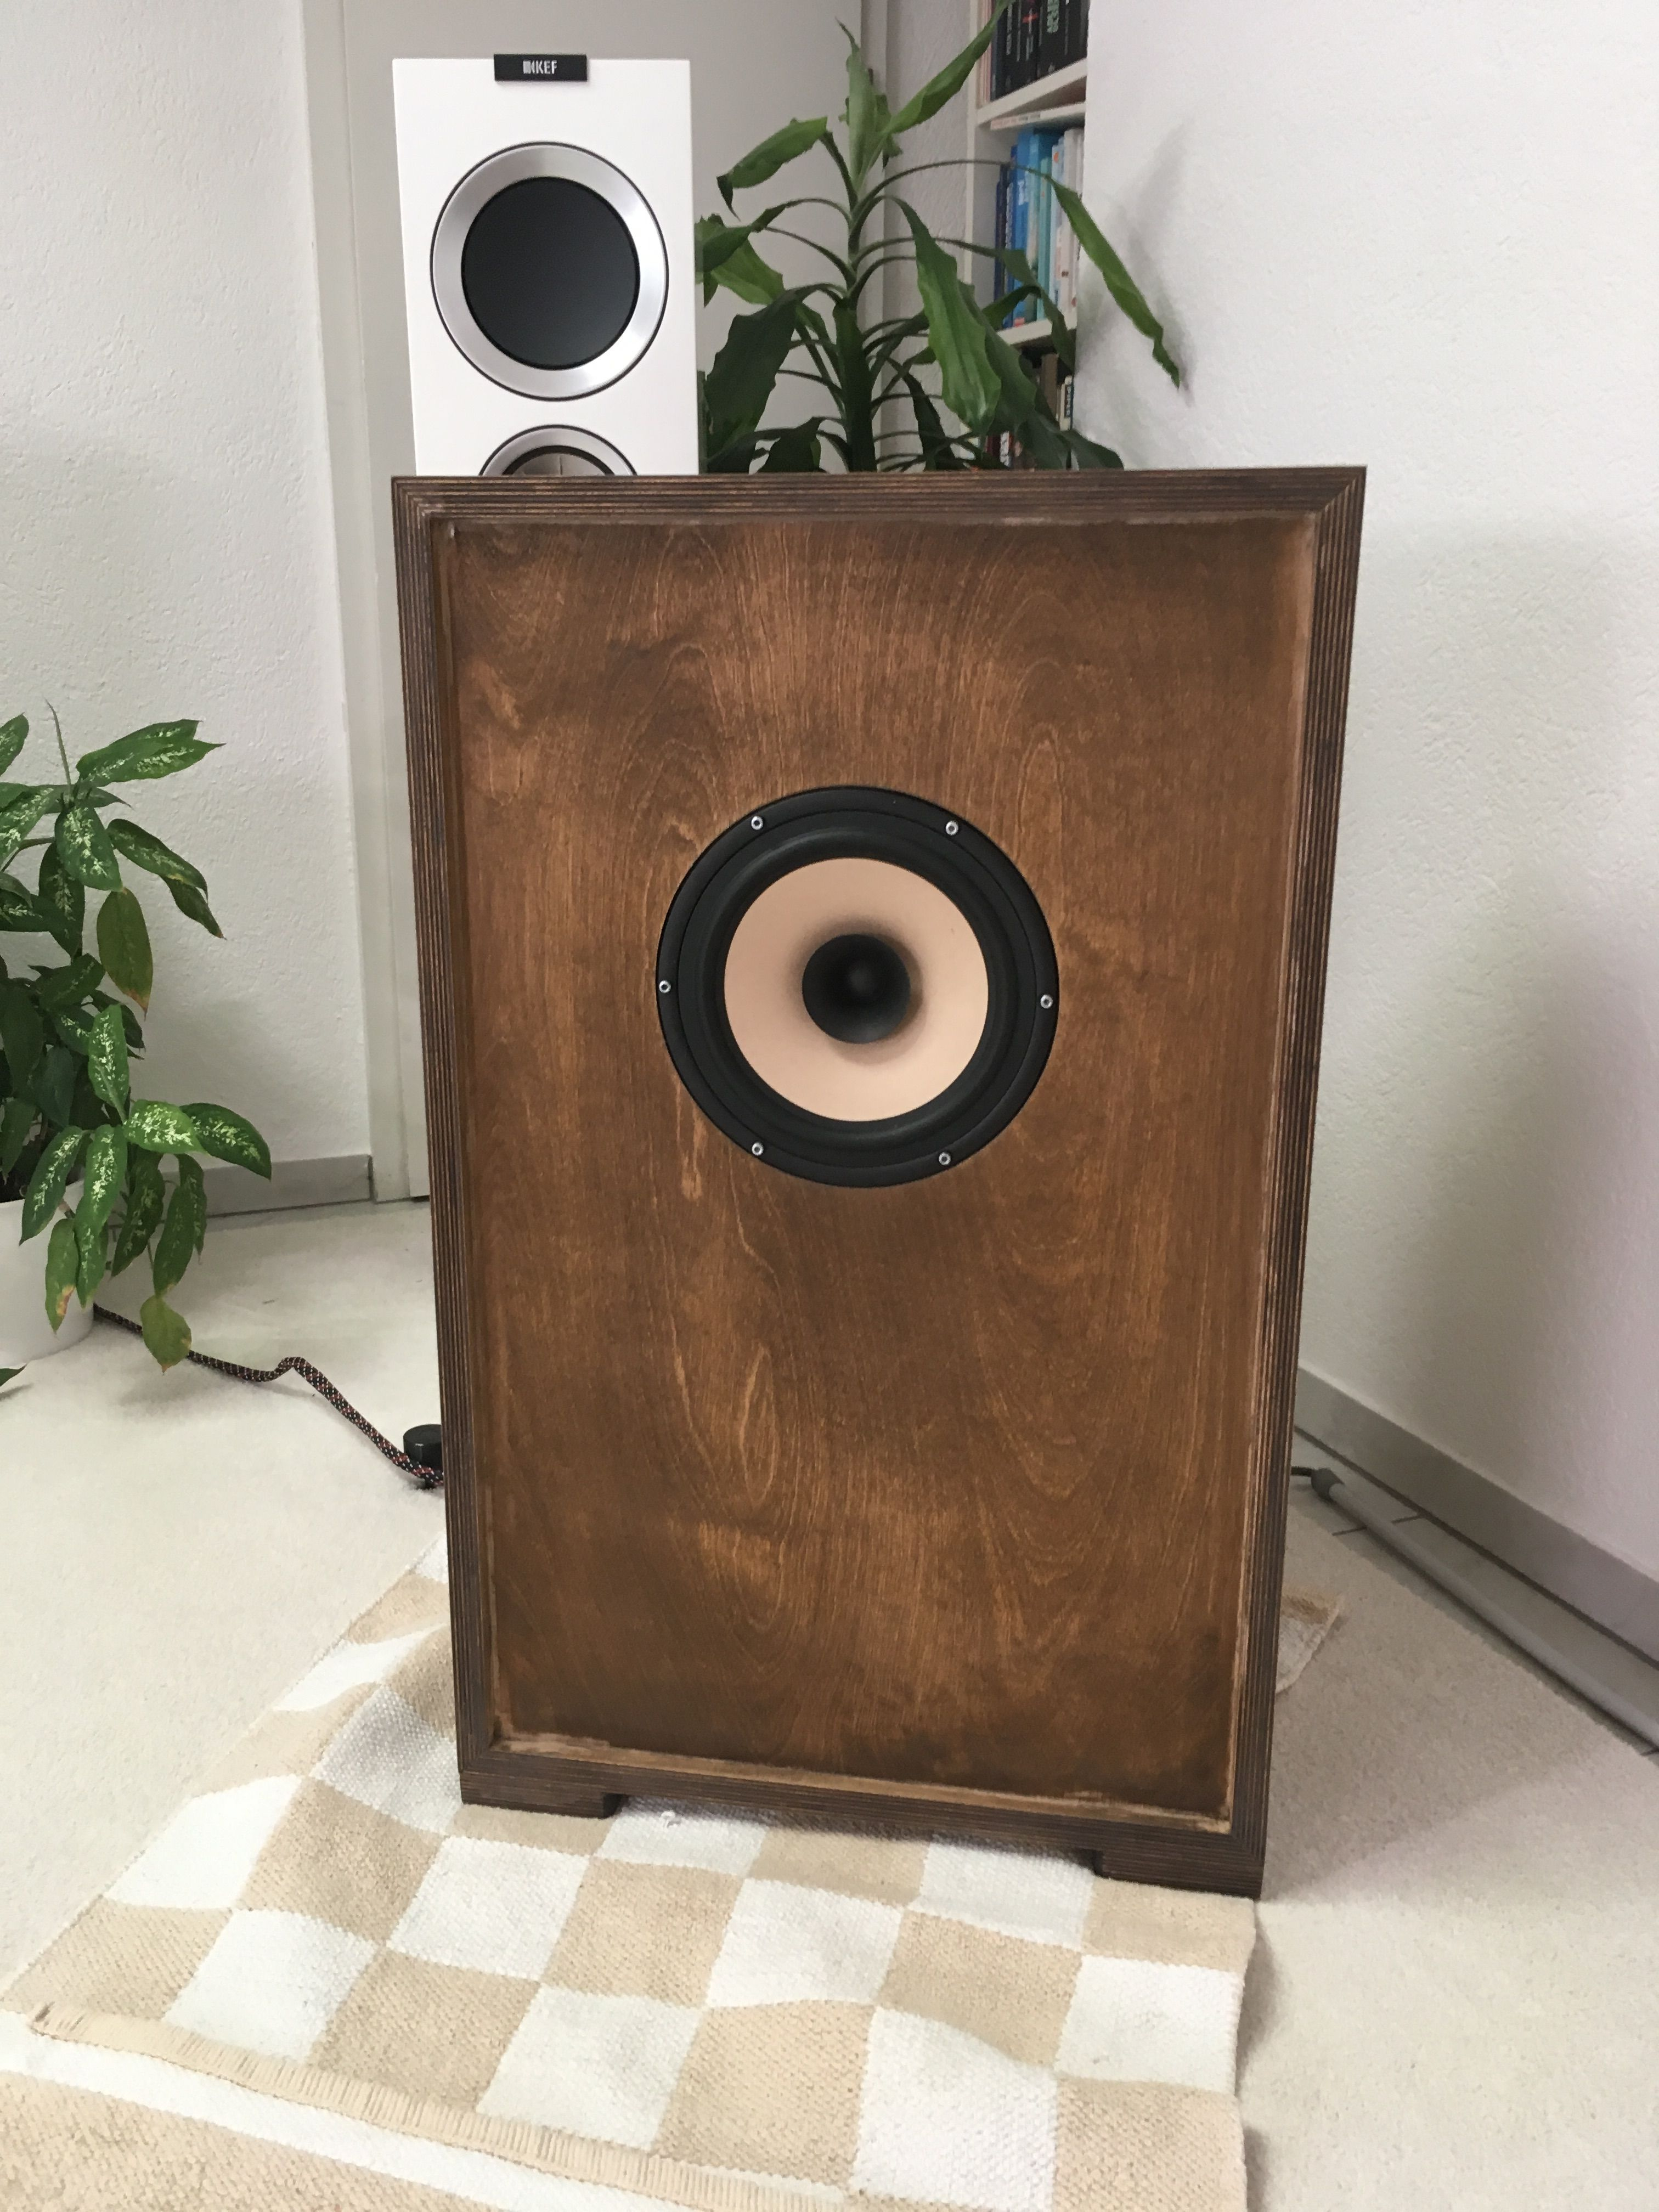 """My nearly finished """"Leagere Excotica"""" seald enclosure speaker"""